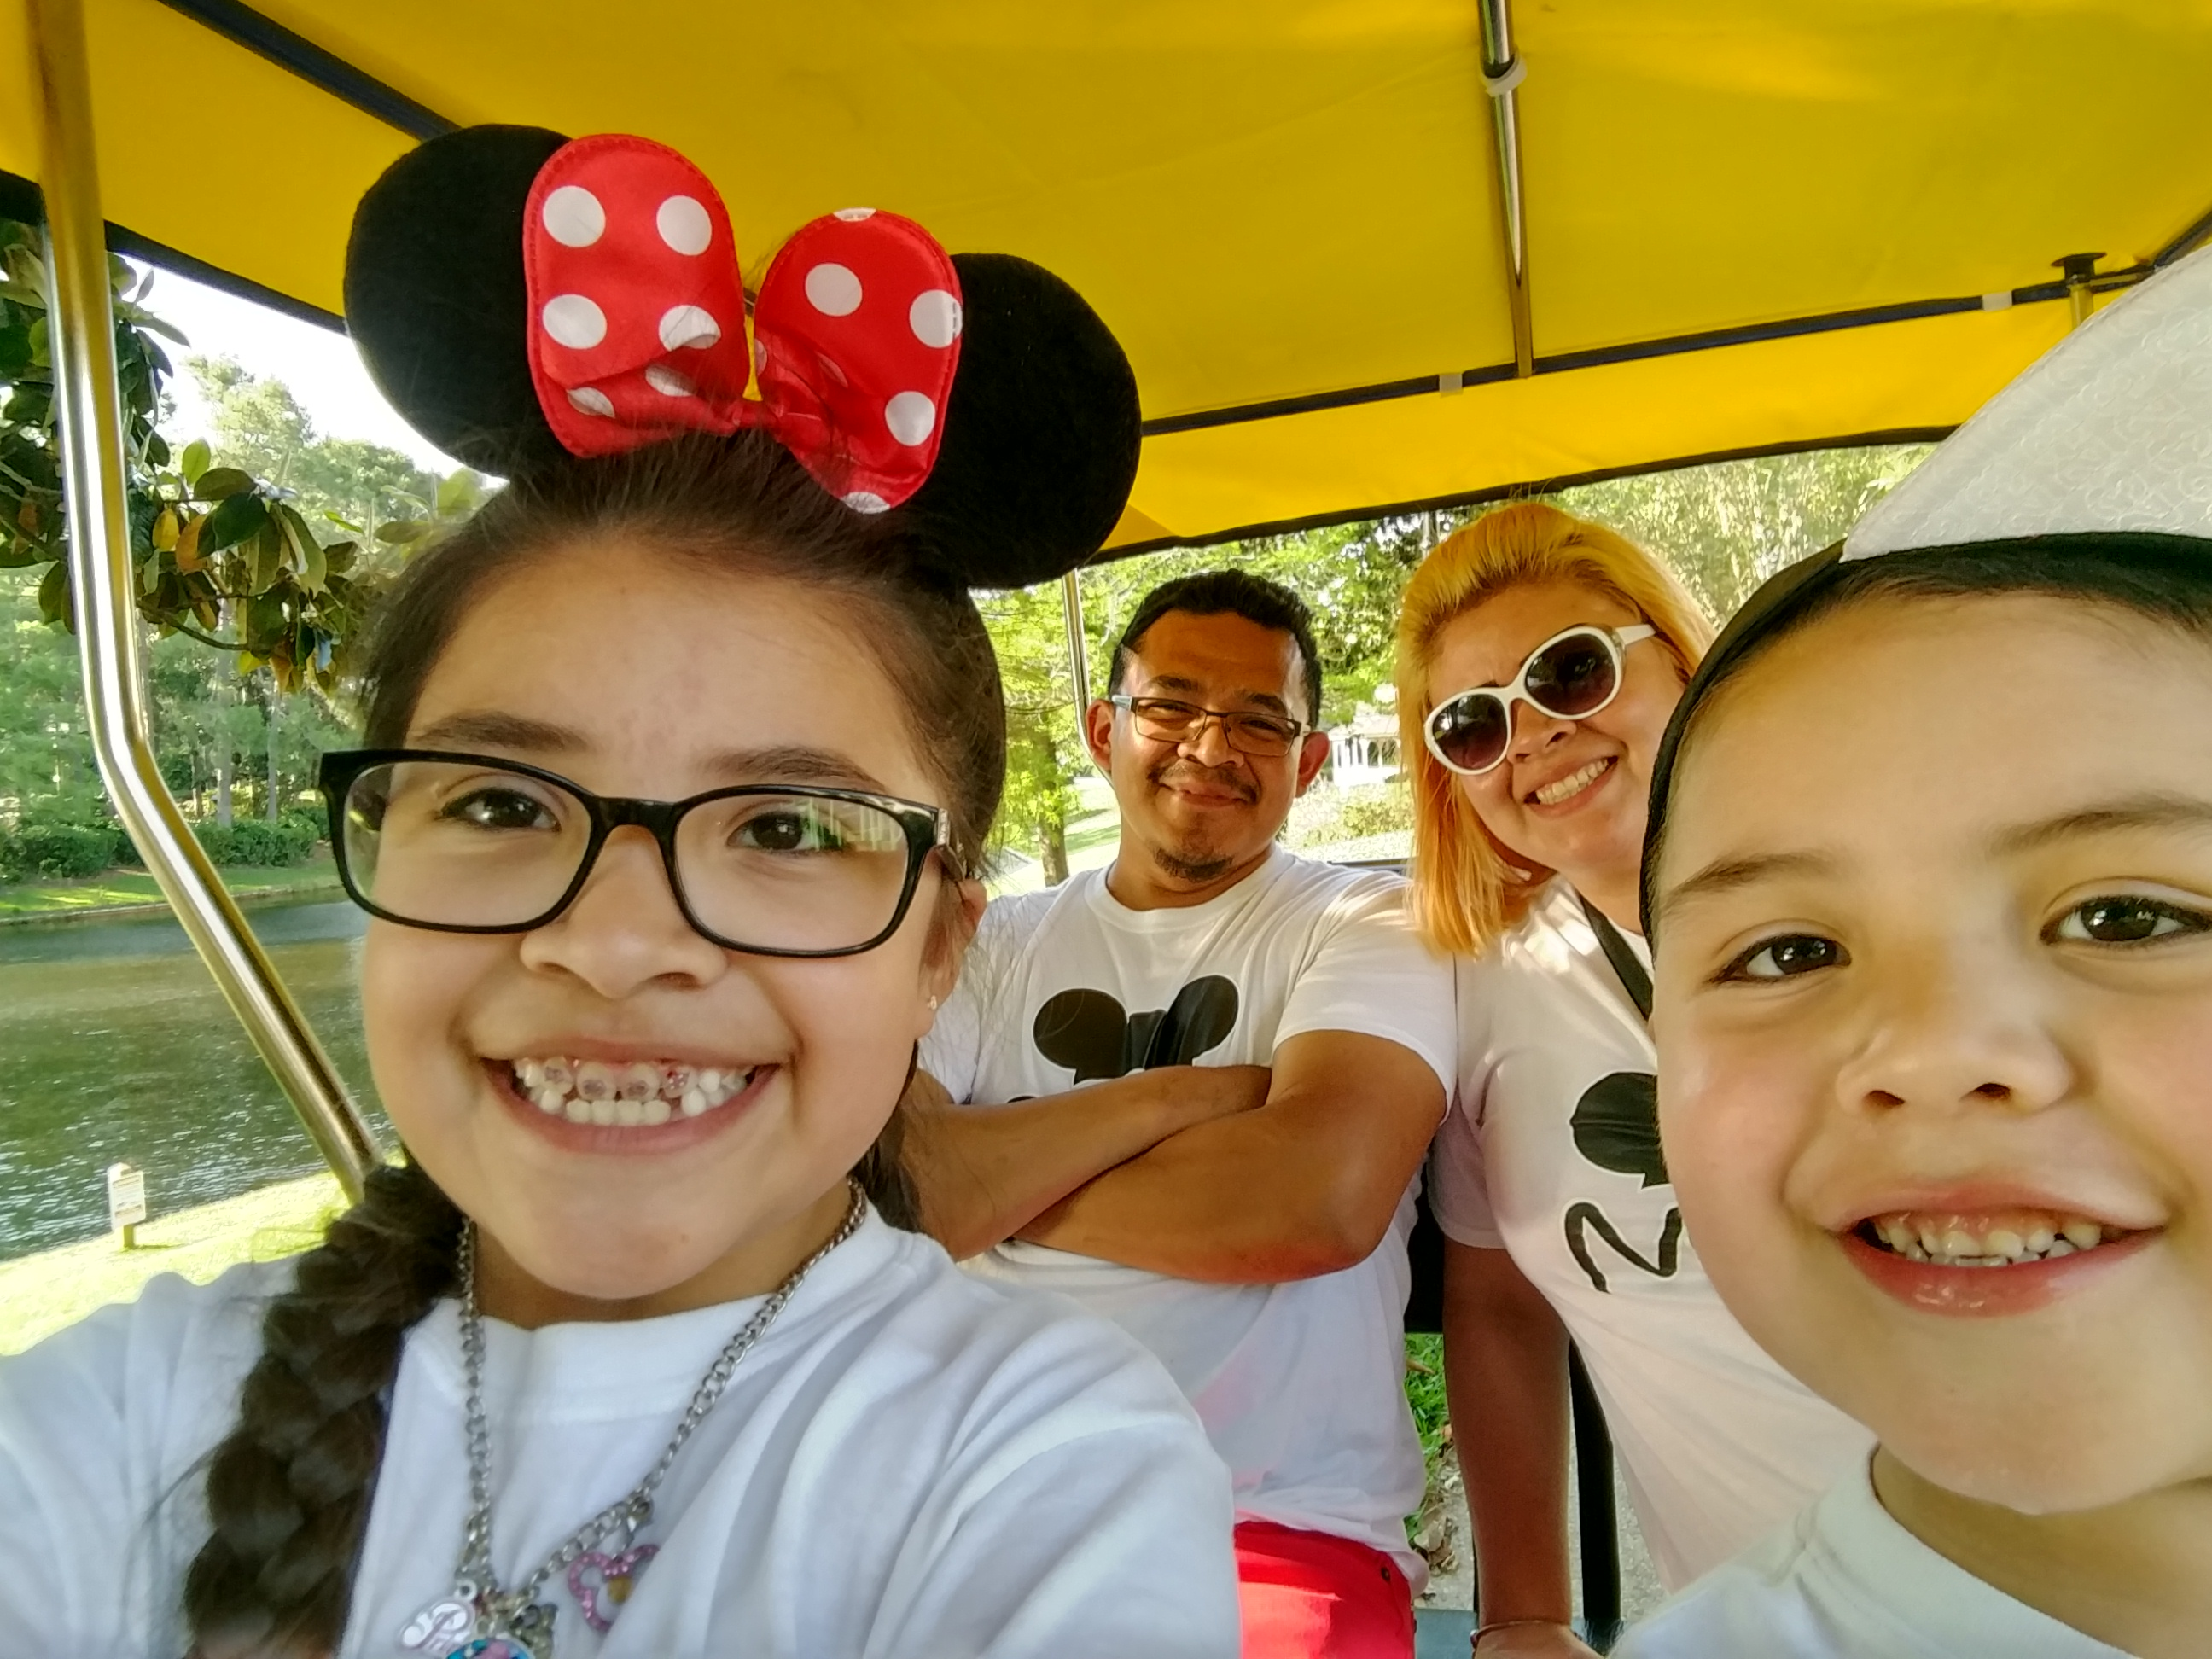 Family in cart, young girl in front with Mickey ears, young boy next to her, parents in back